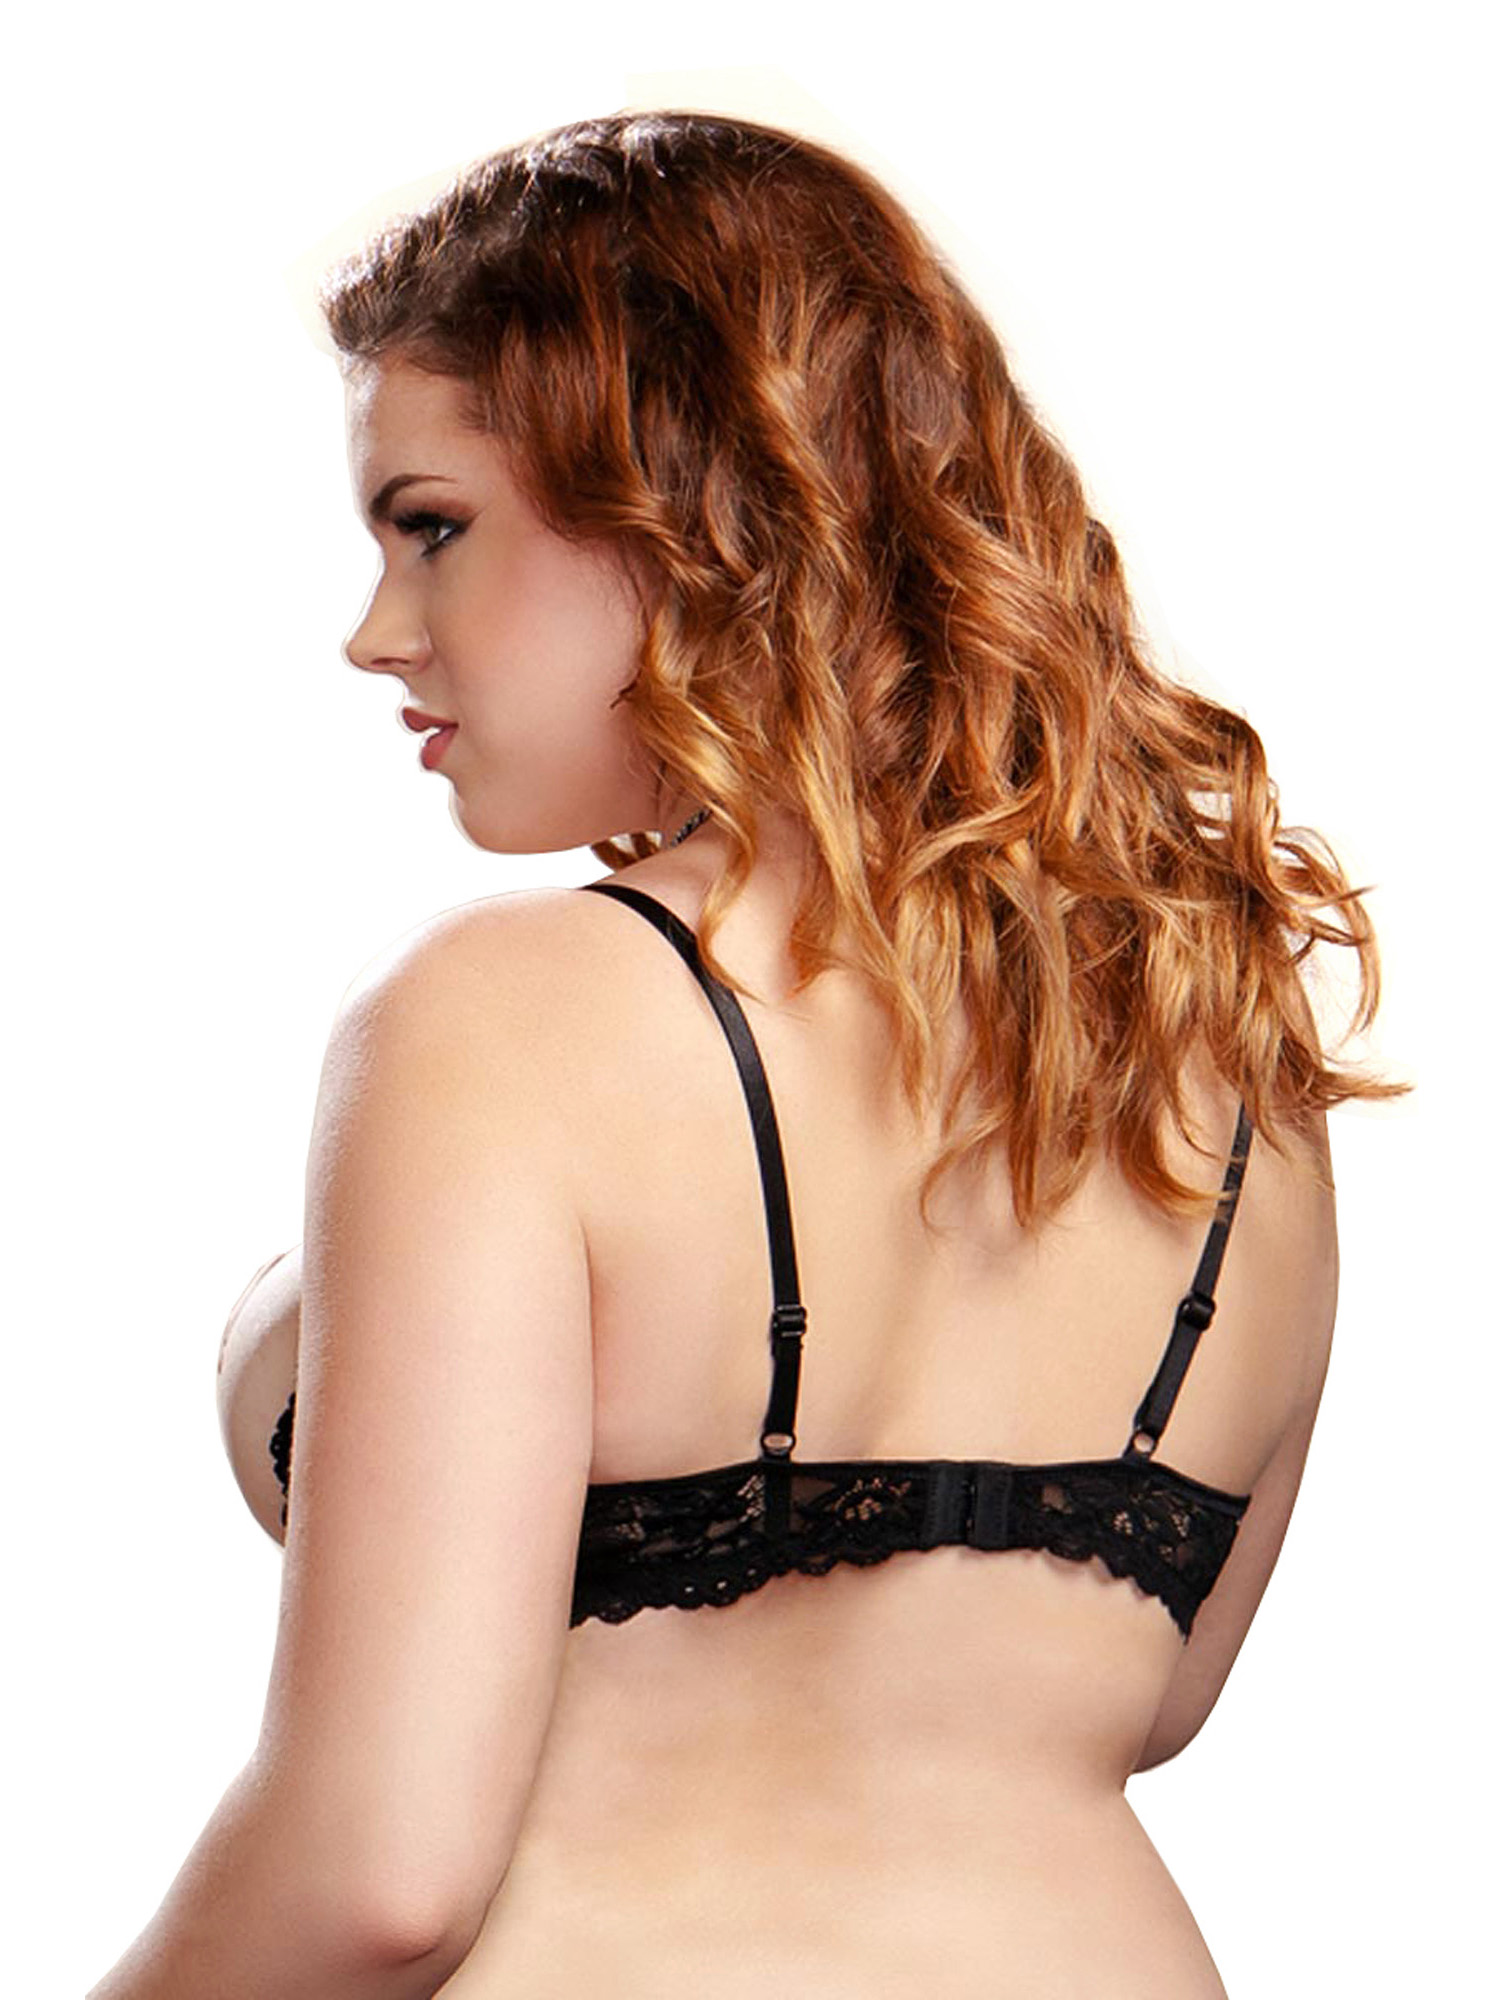 Plus Size Sexy Full Figure Underwire Lace Shelf Bra | eBay